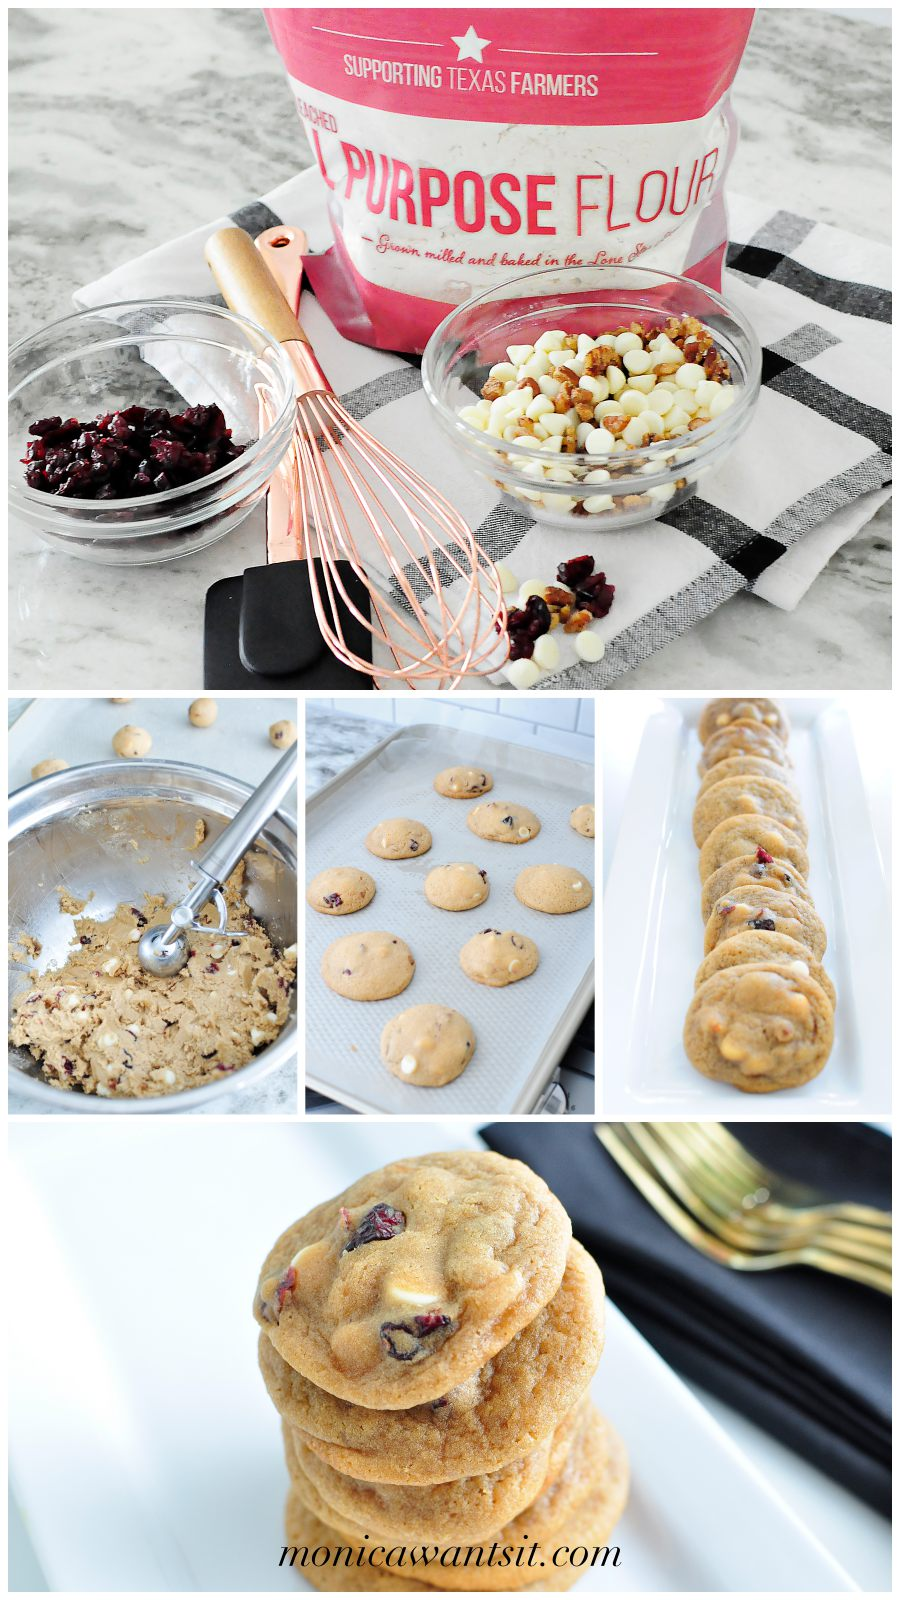 BEST COOKIES EVER- white chocolate cranberry cookies are soft, chewy and delicious! Perfect dessert for Thanksgiving and Christmas baking.